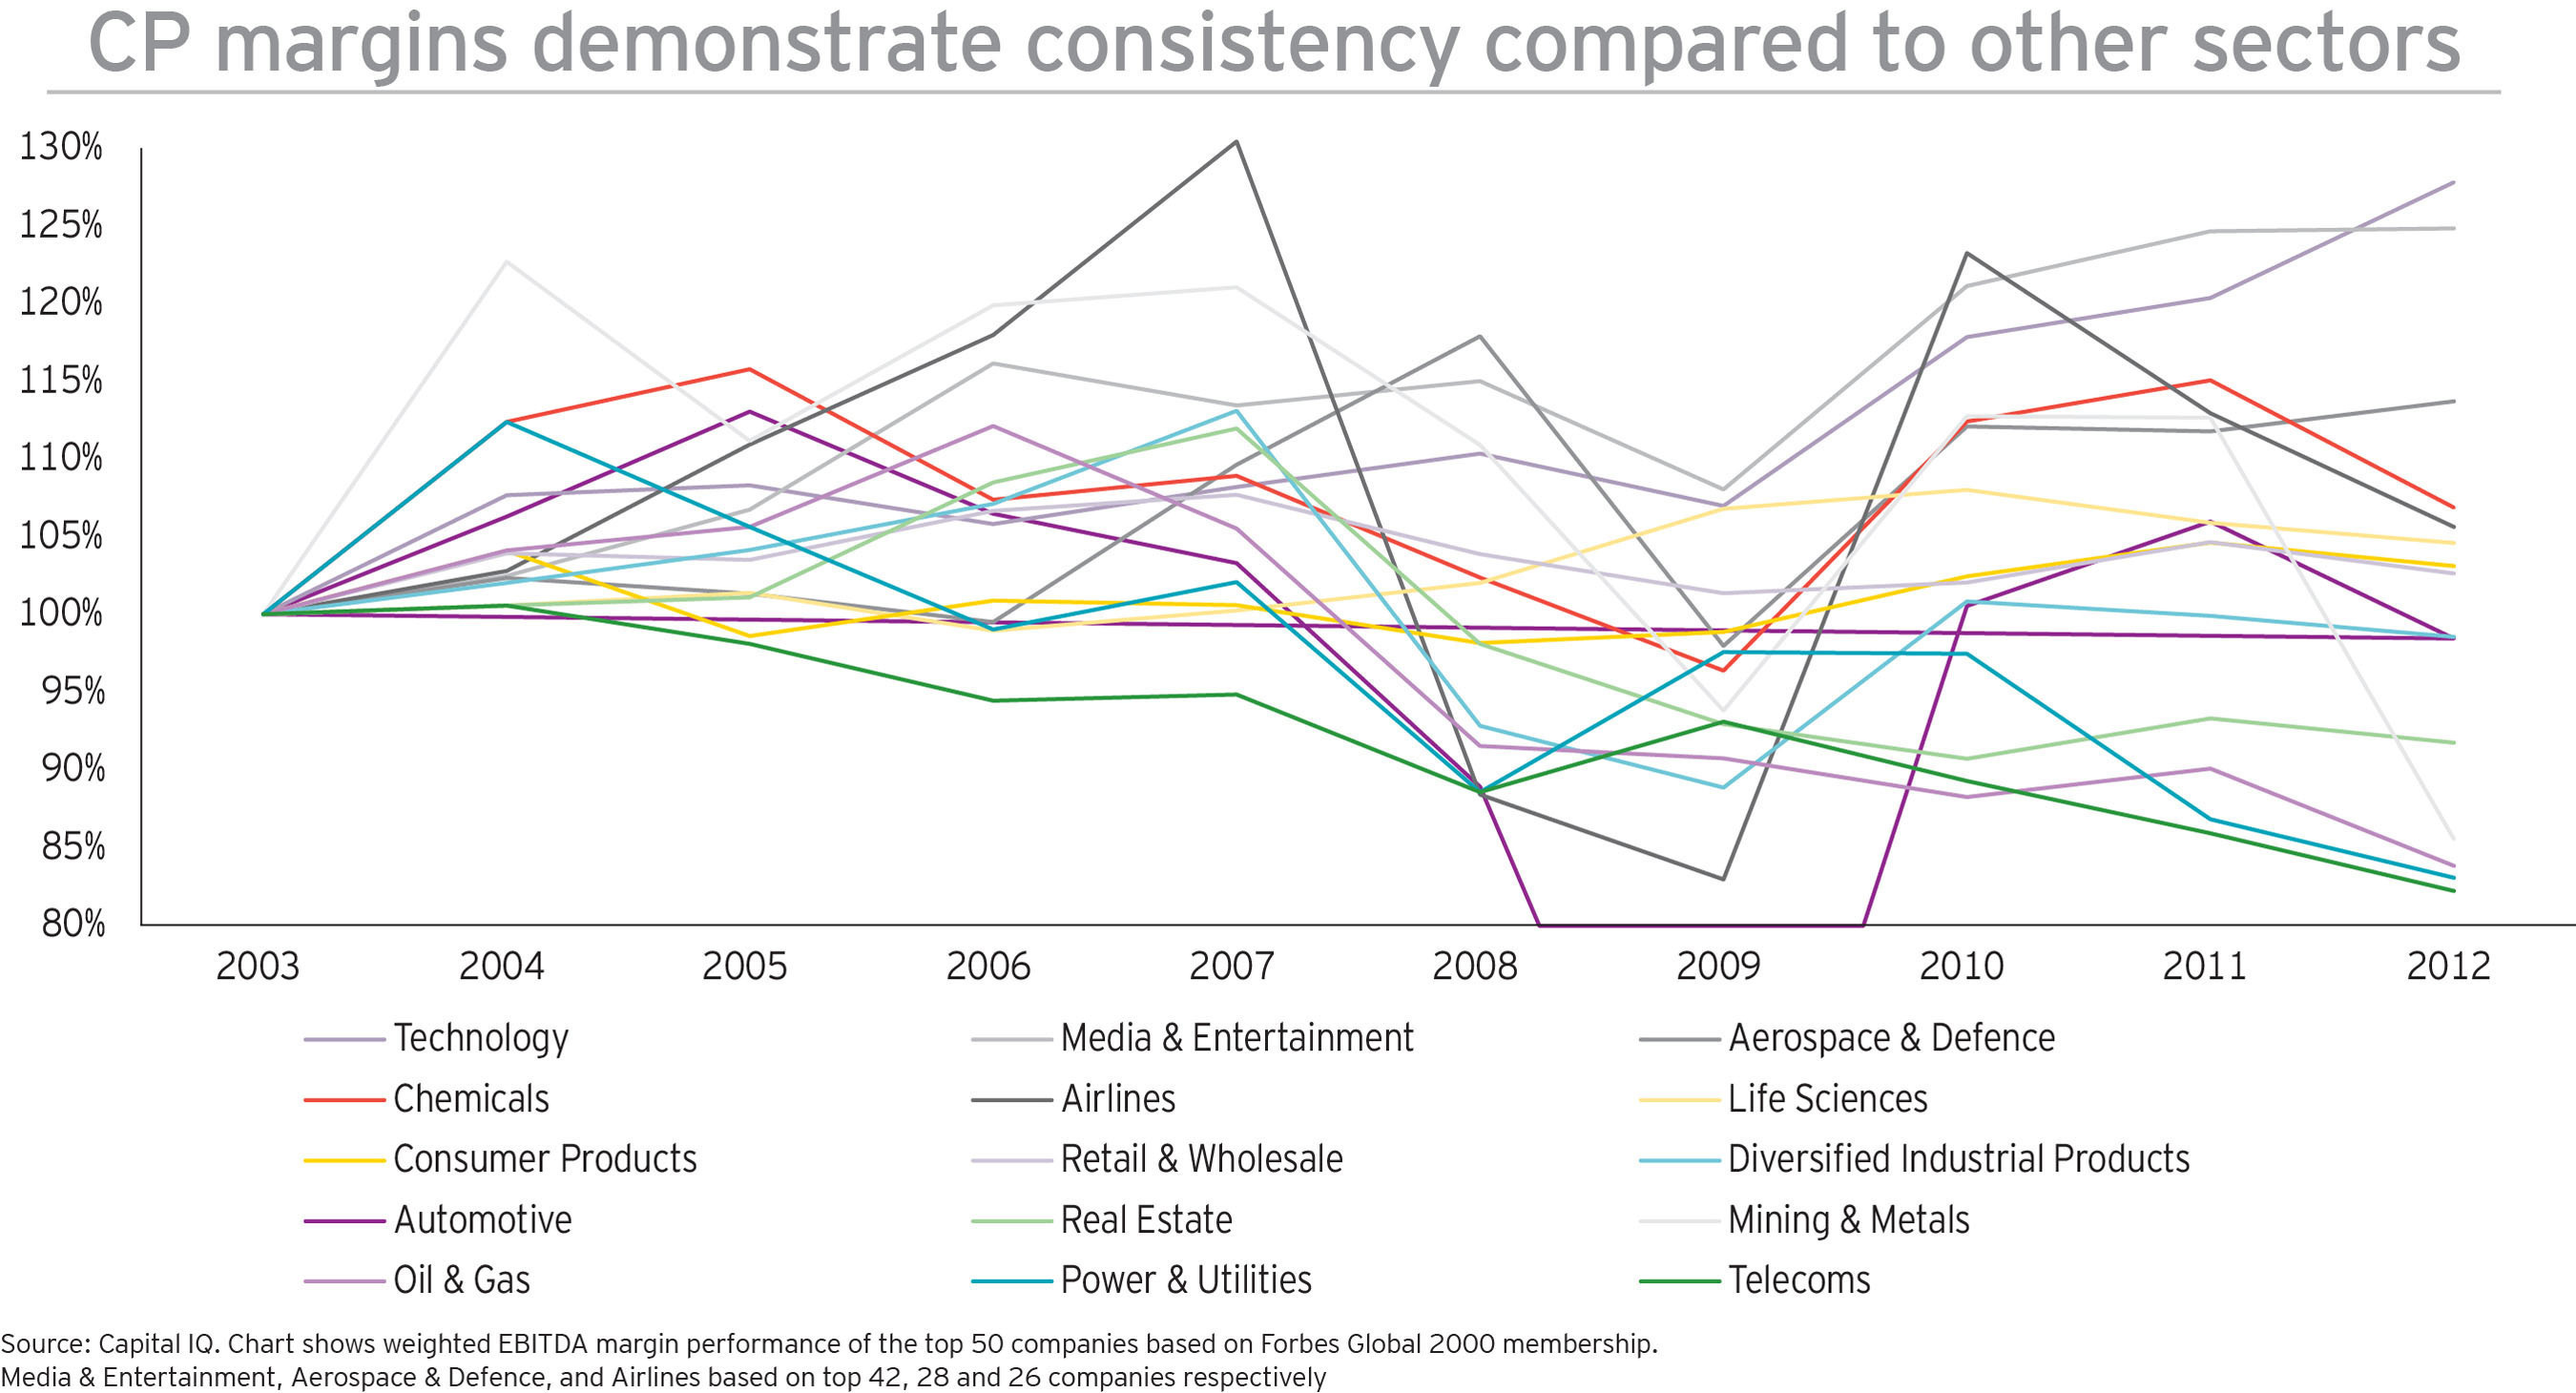 CP margins demonstrate consistency compared to other sectors. (PRNewsFoto/EY) (PRNewsFoto/EY)